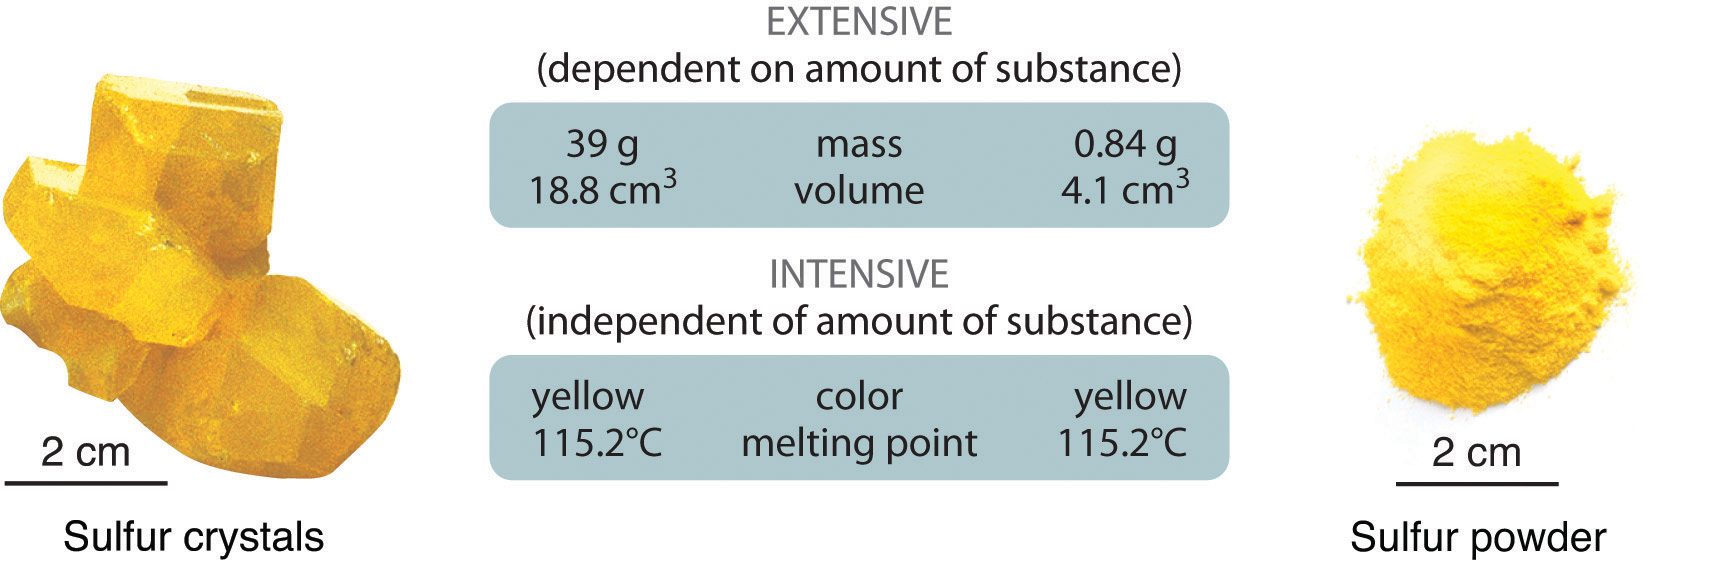 Contrast Intensive And Extensive Physical Properties